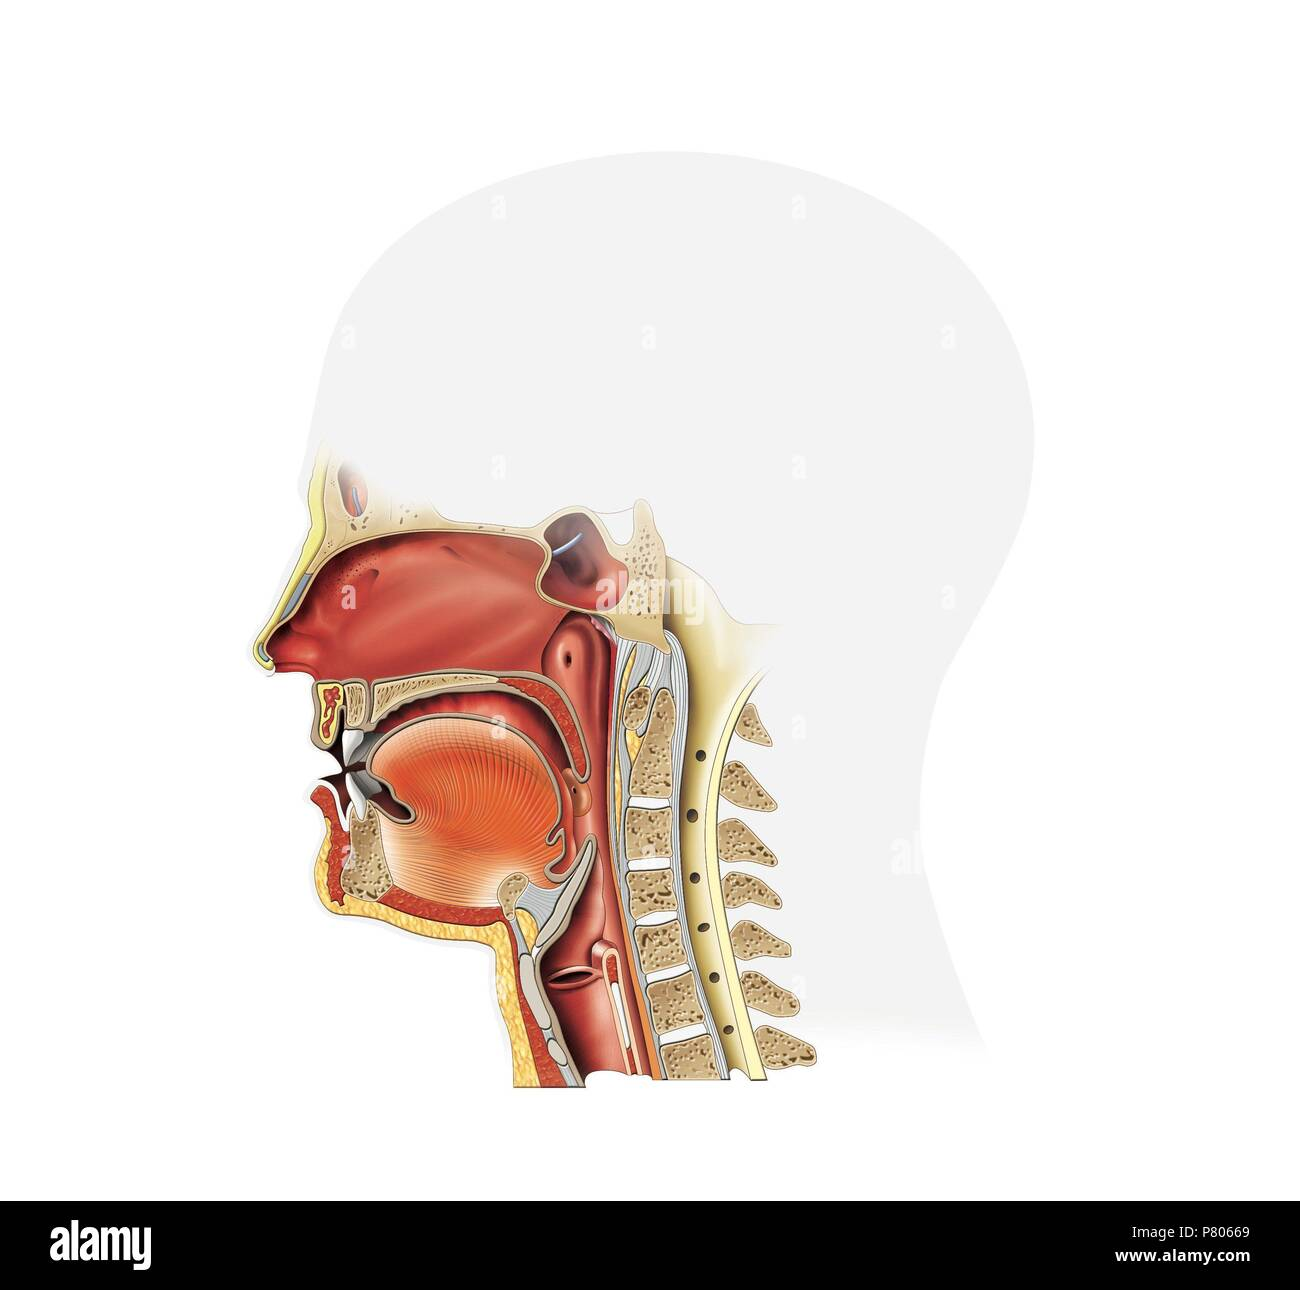 Buccal Cavity Diagram  Digestive System Of Rabbit  With